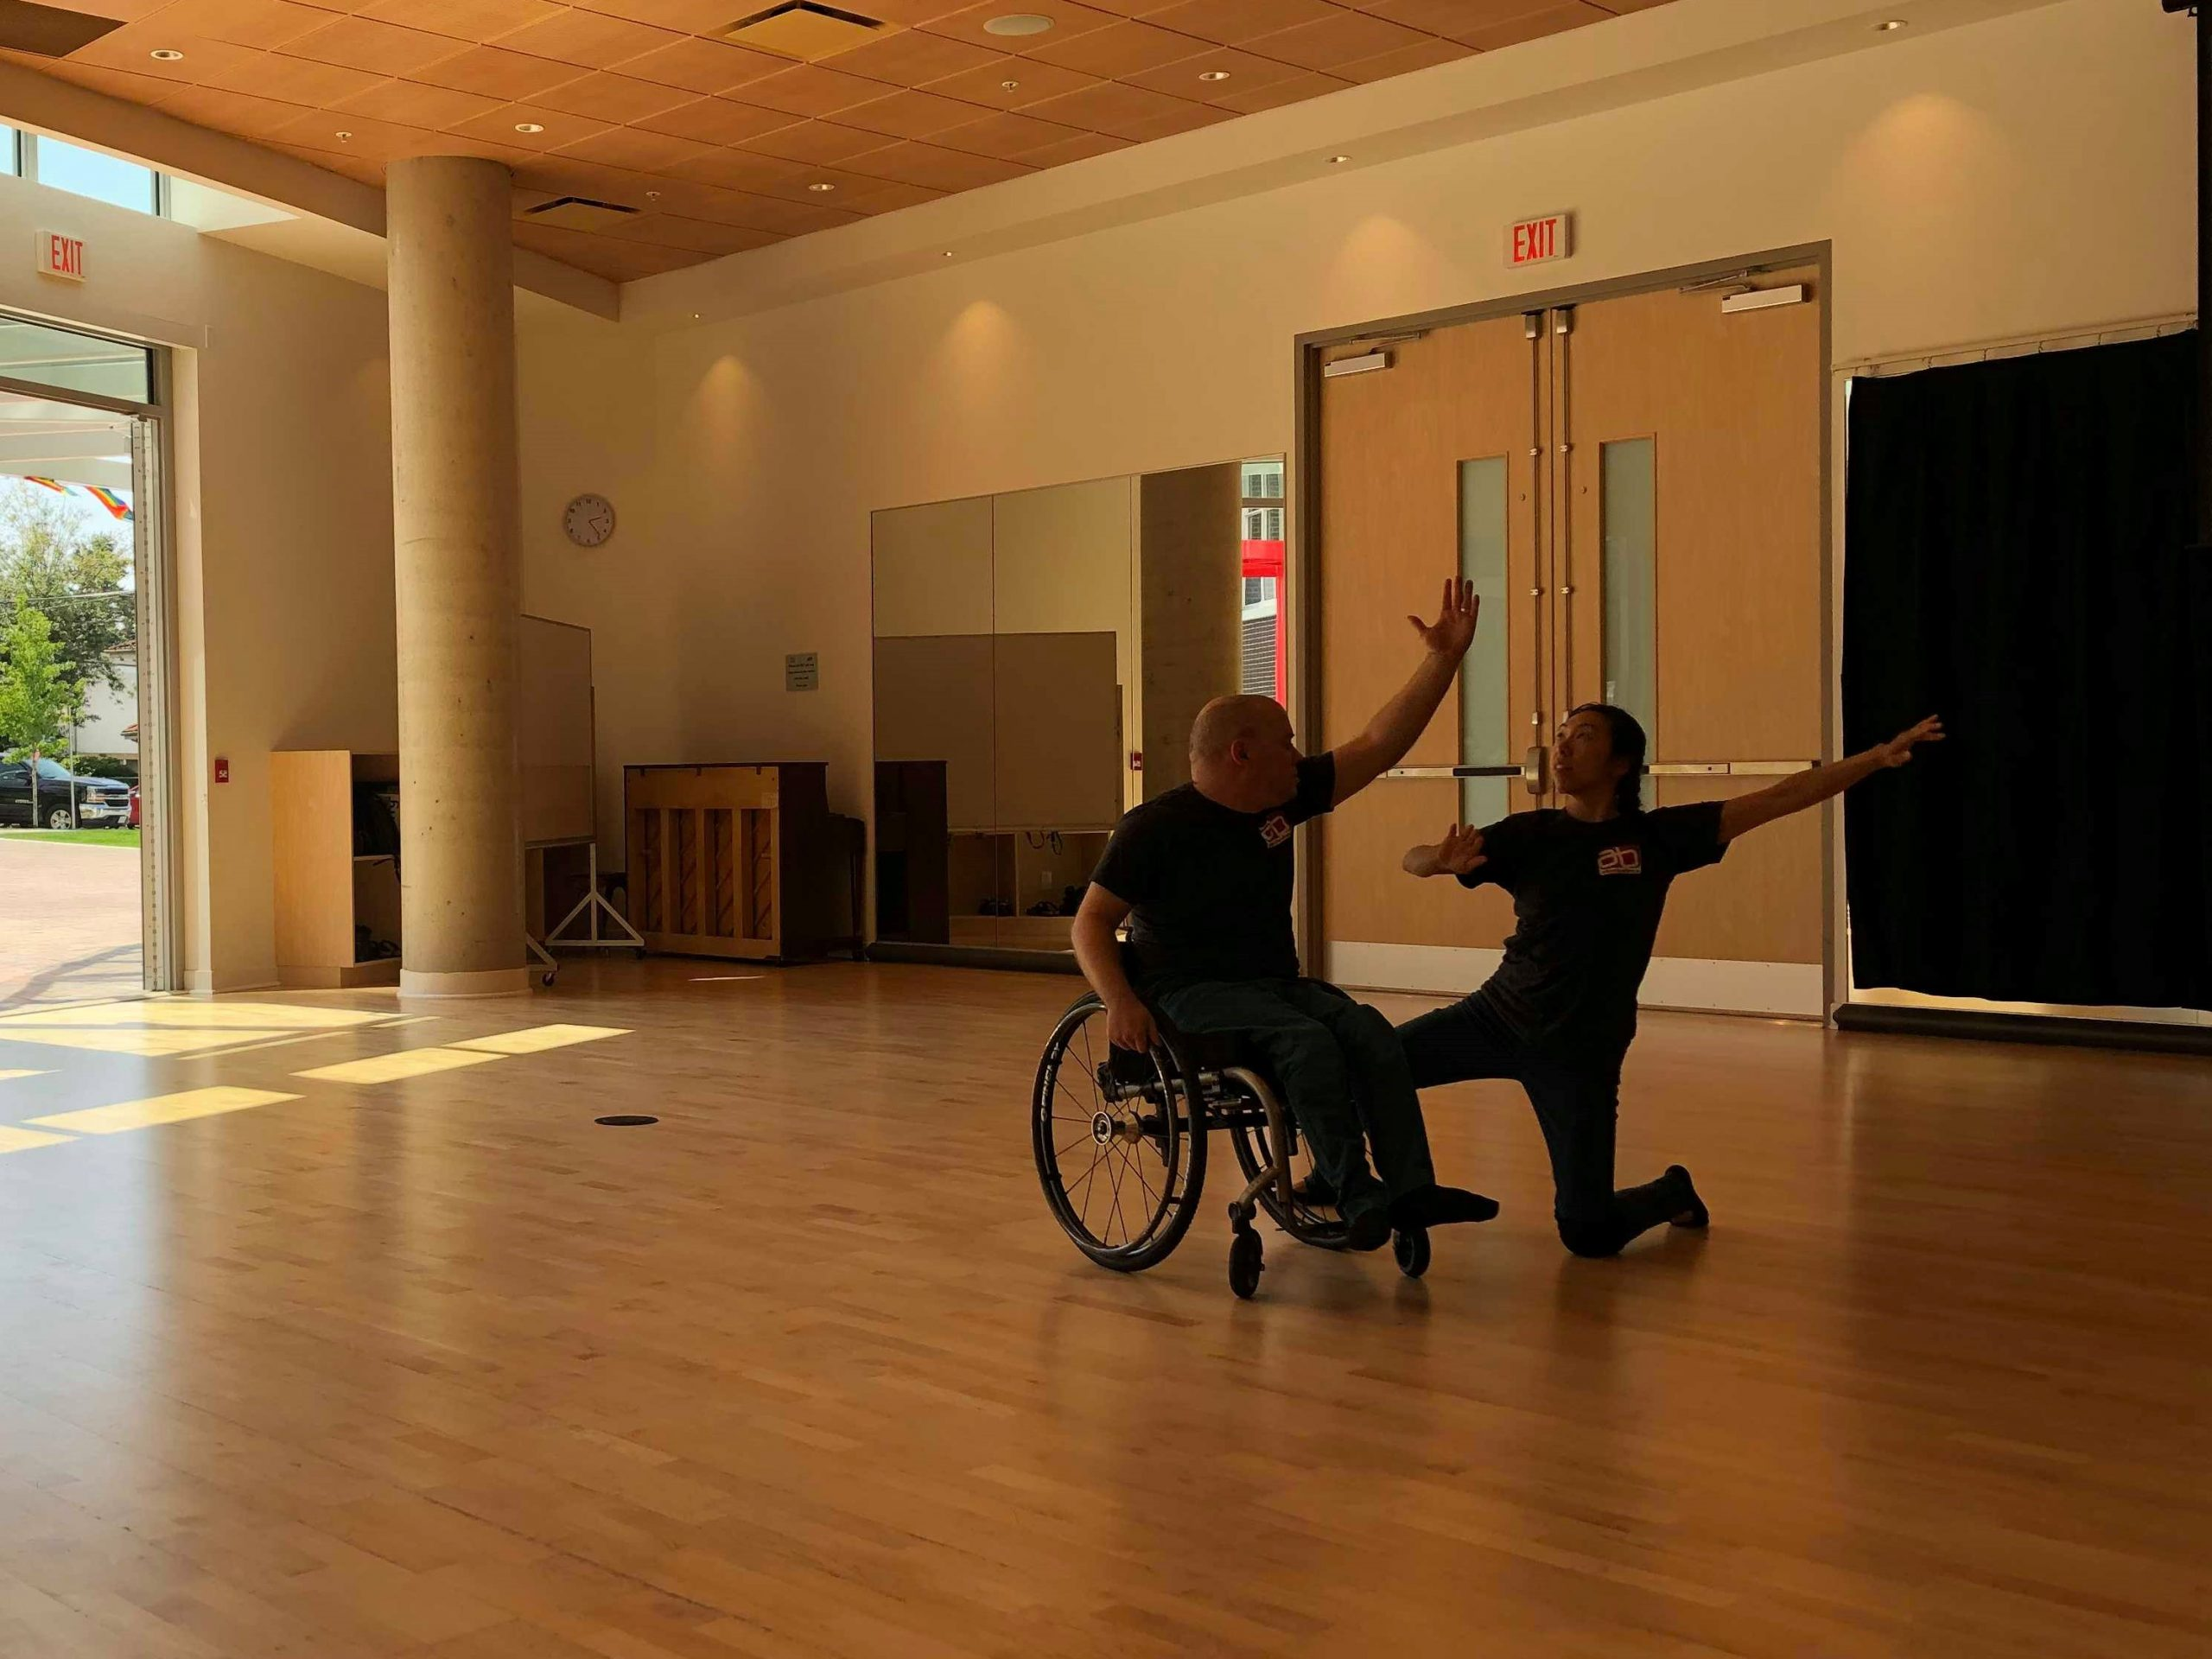 A woman and a man in a wheelchair are dancing together at the Annex Multipurpose room. The woman is kneeling next to the man and they both have one arm spread to the air.